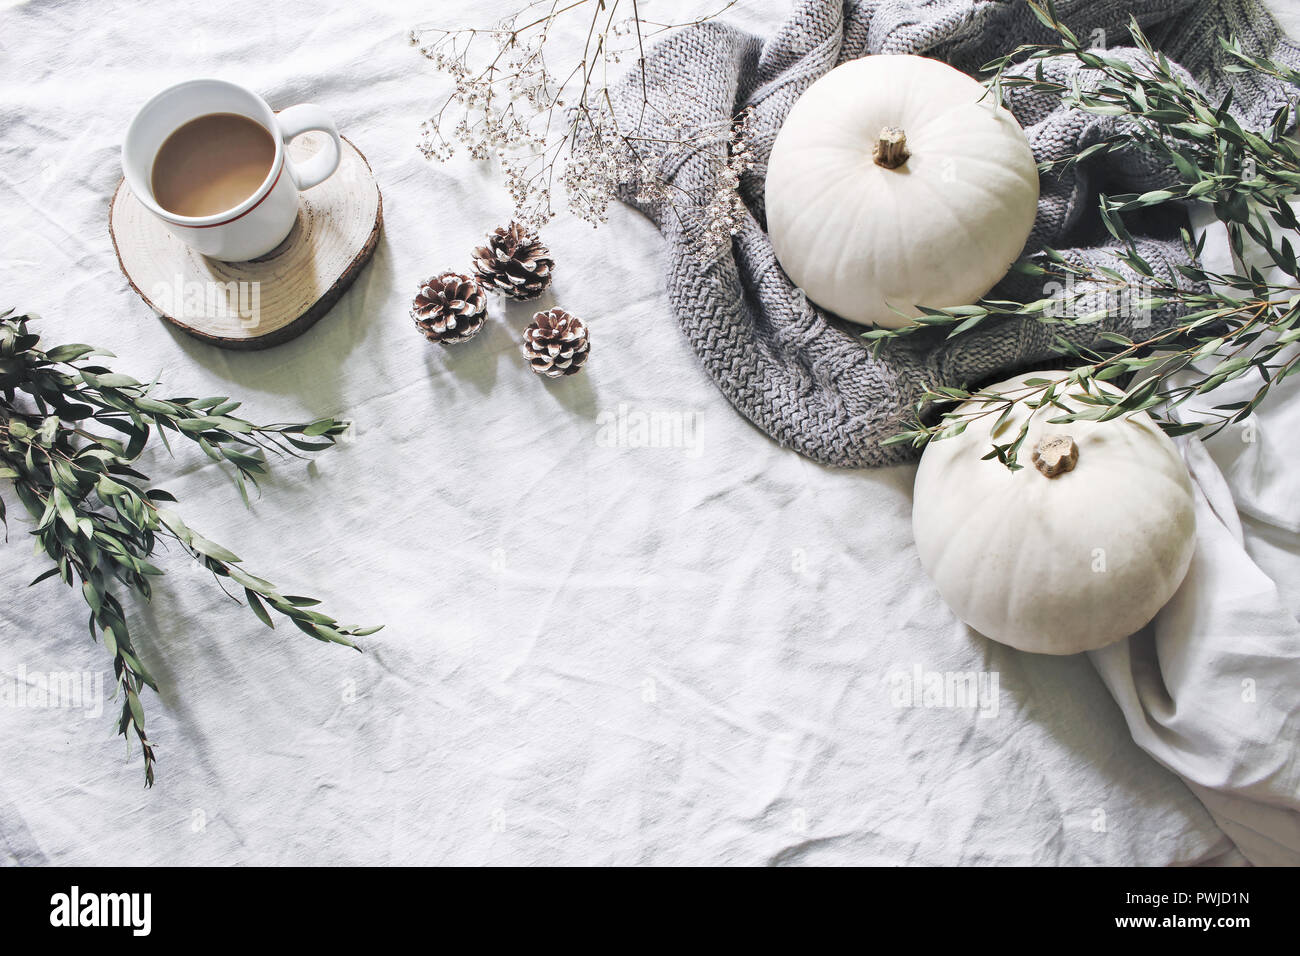 autumn styled photo feminine halloween desktop scene cup of coffee eucalyptus pine cones white pumpkins and gypsophila flowers table background PWJD1N